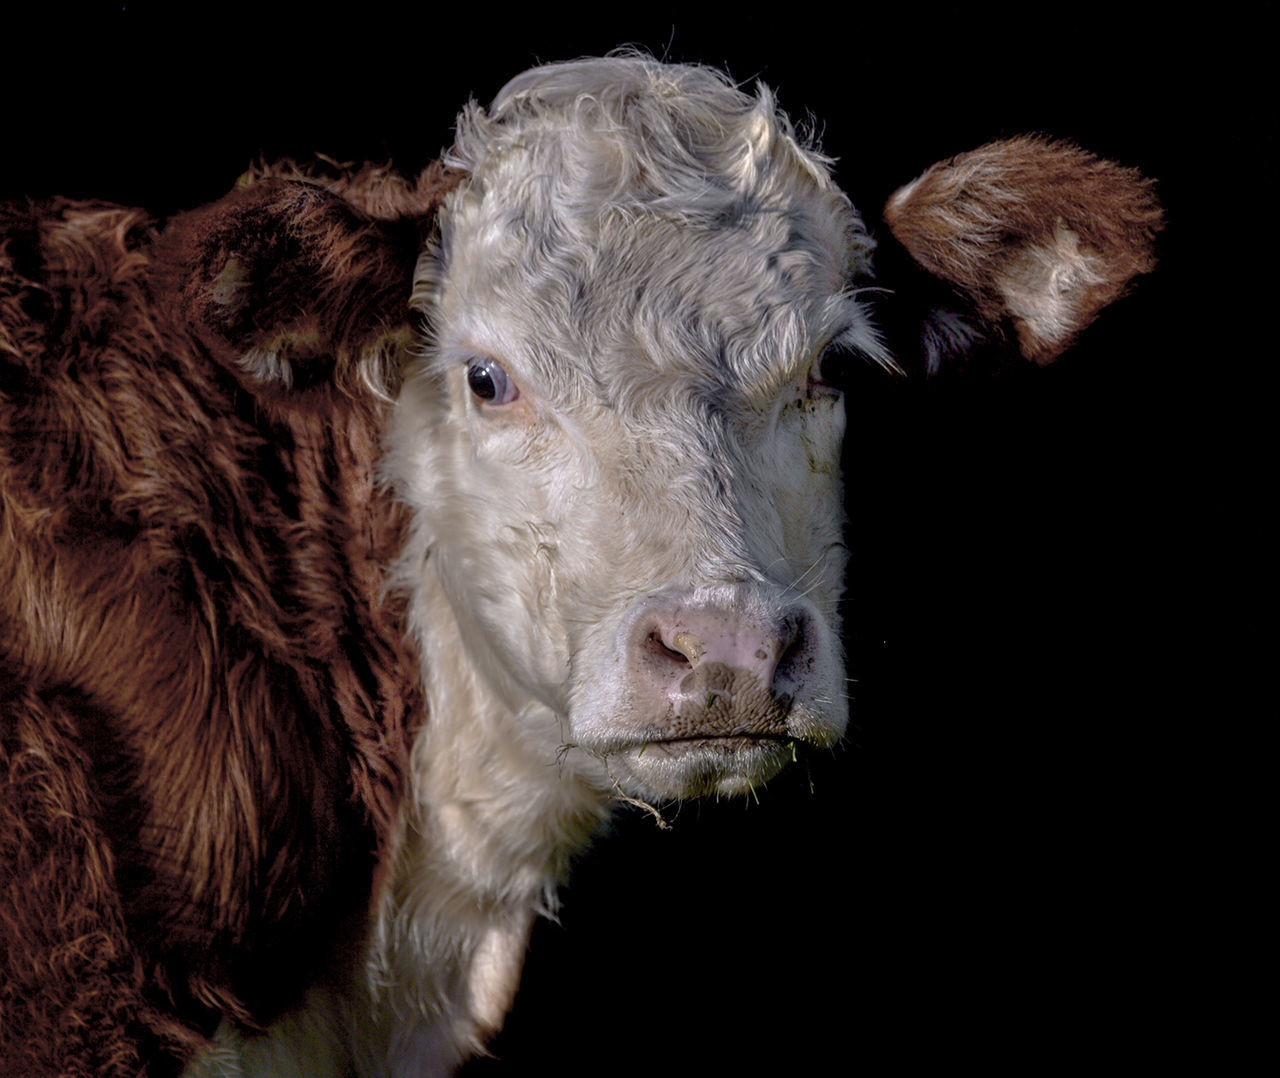 Hereford Cow. Agriculture Animal Animal Body Part Animal Head  Animal Themes Black Background Cattle Close-up Day Livestock Mammal Nature No People Outdoors Young Animal